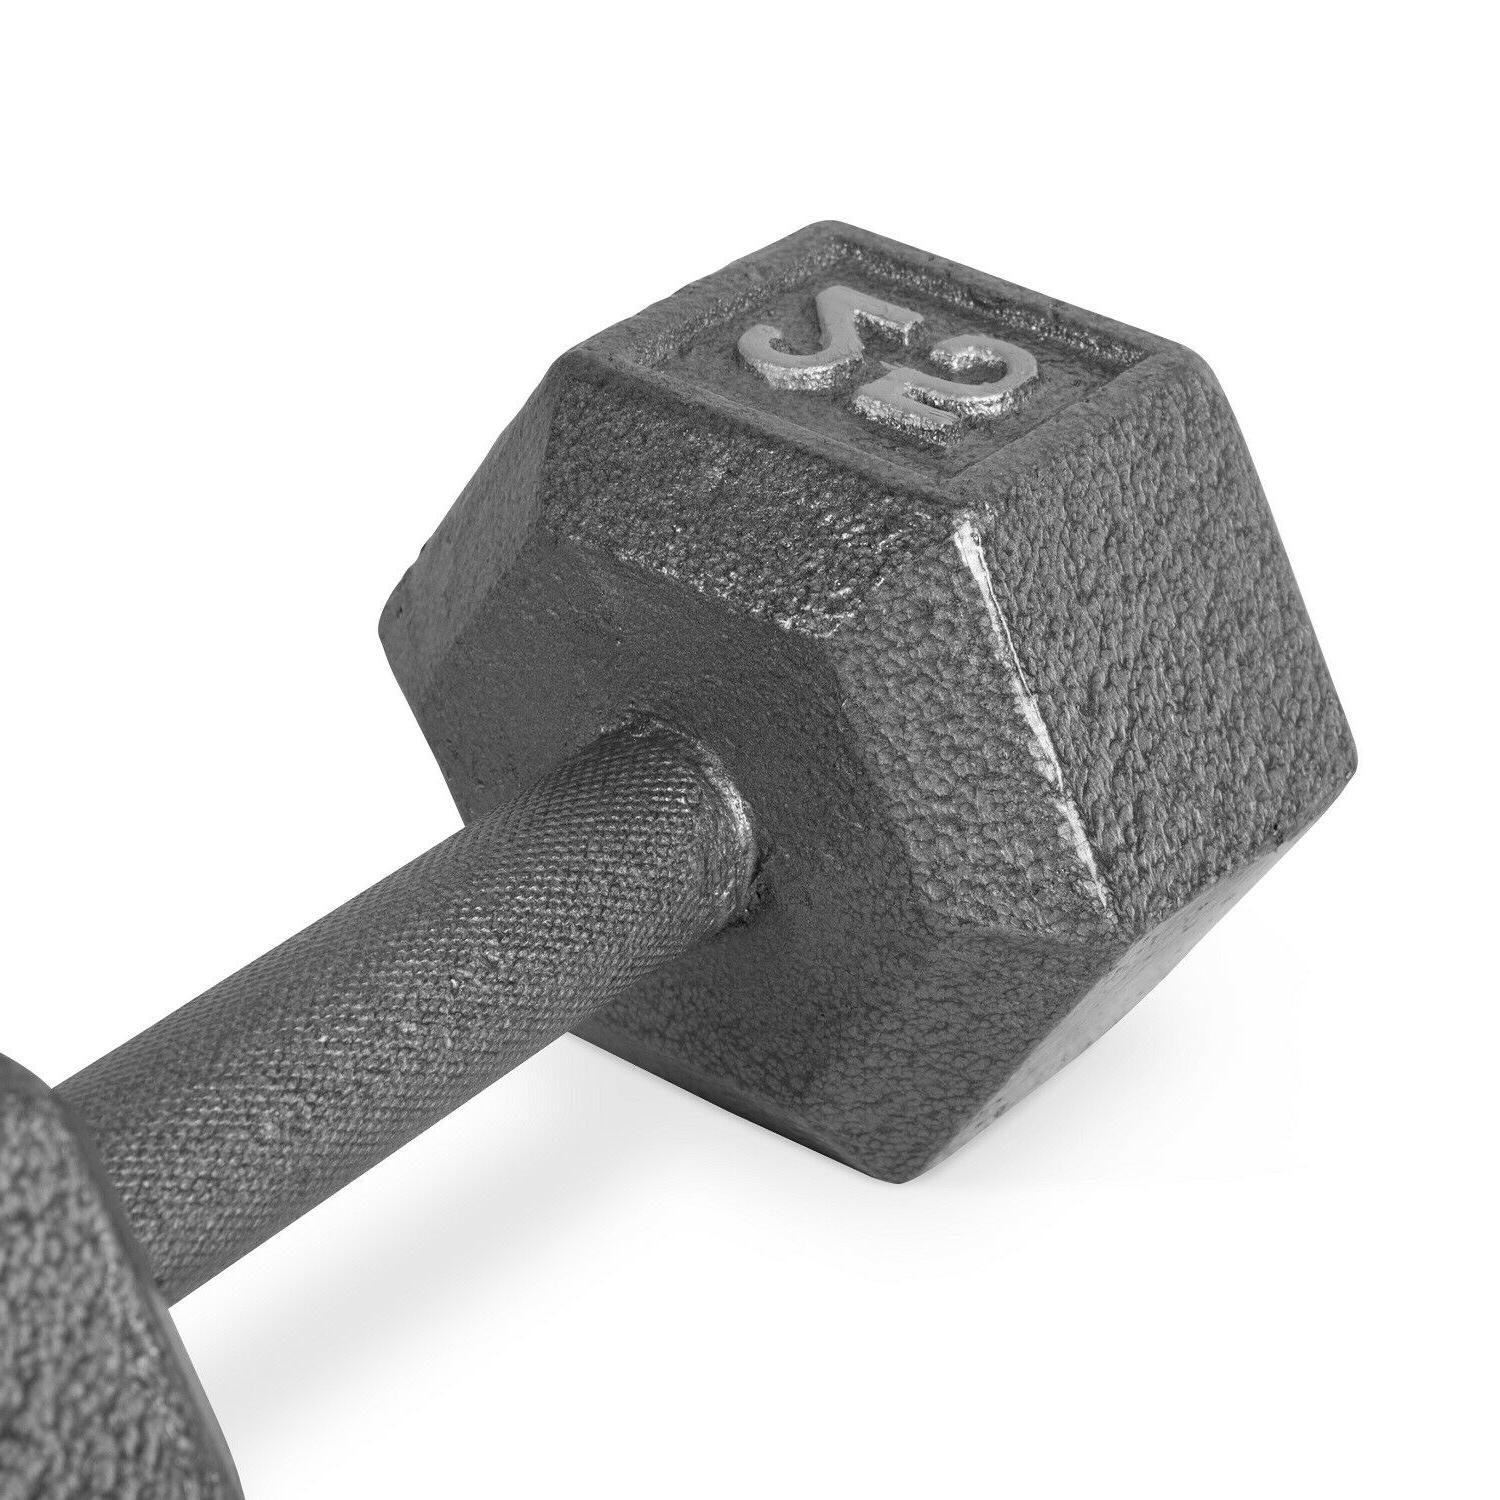 Hex Dumbbells Rubber Home Weight Single Dumbbell